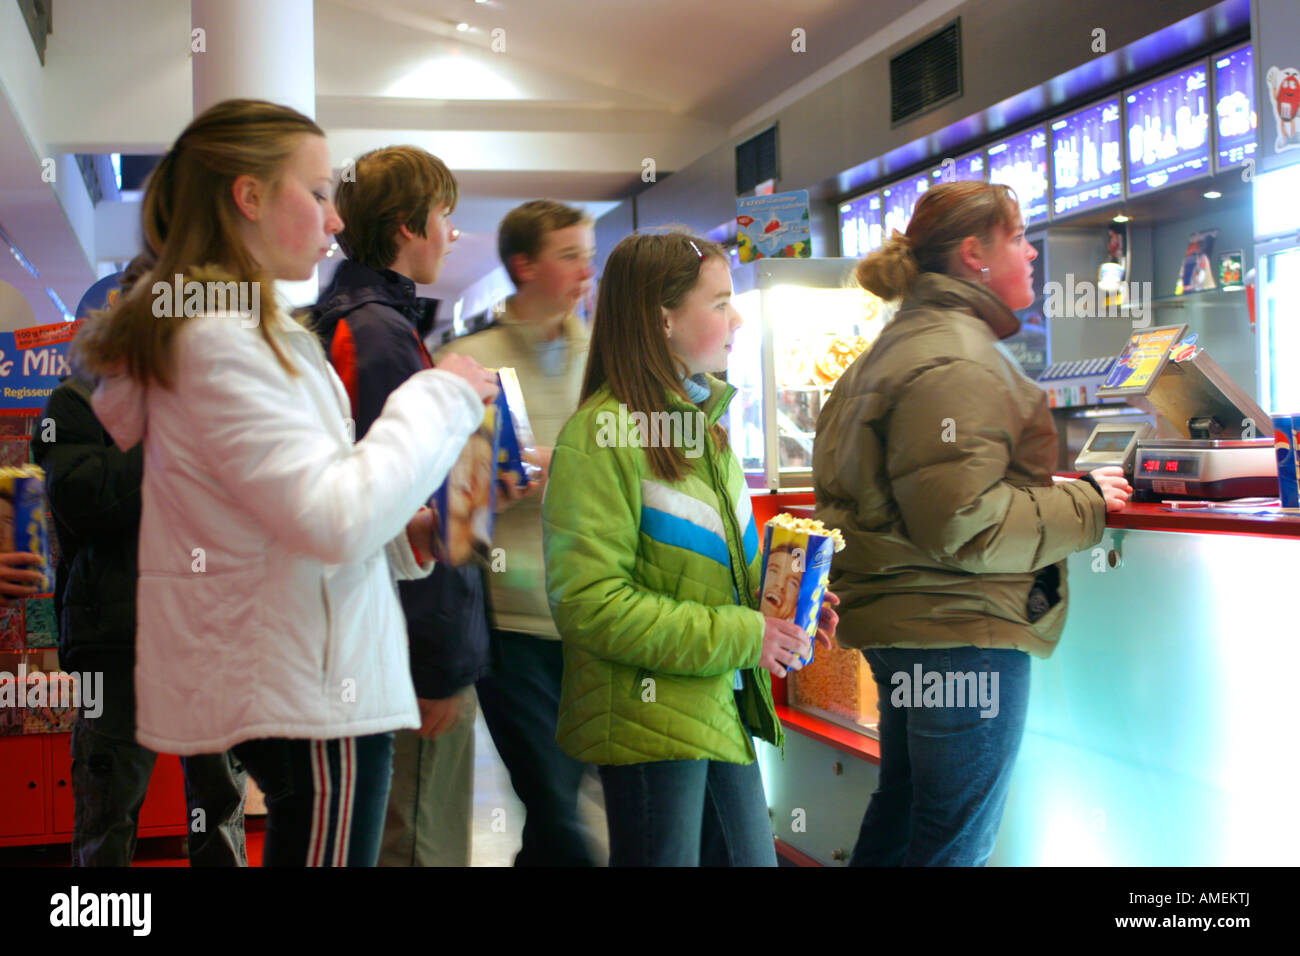 teenagers queuing up to get sweets at a cinema before the film starts - Stock Image